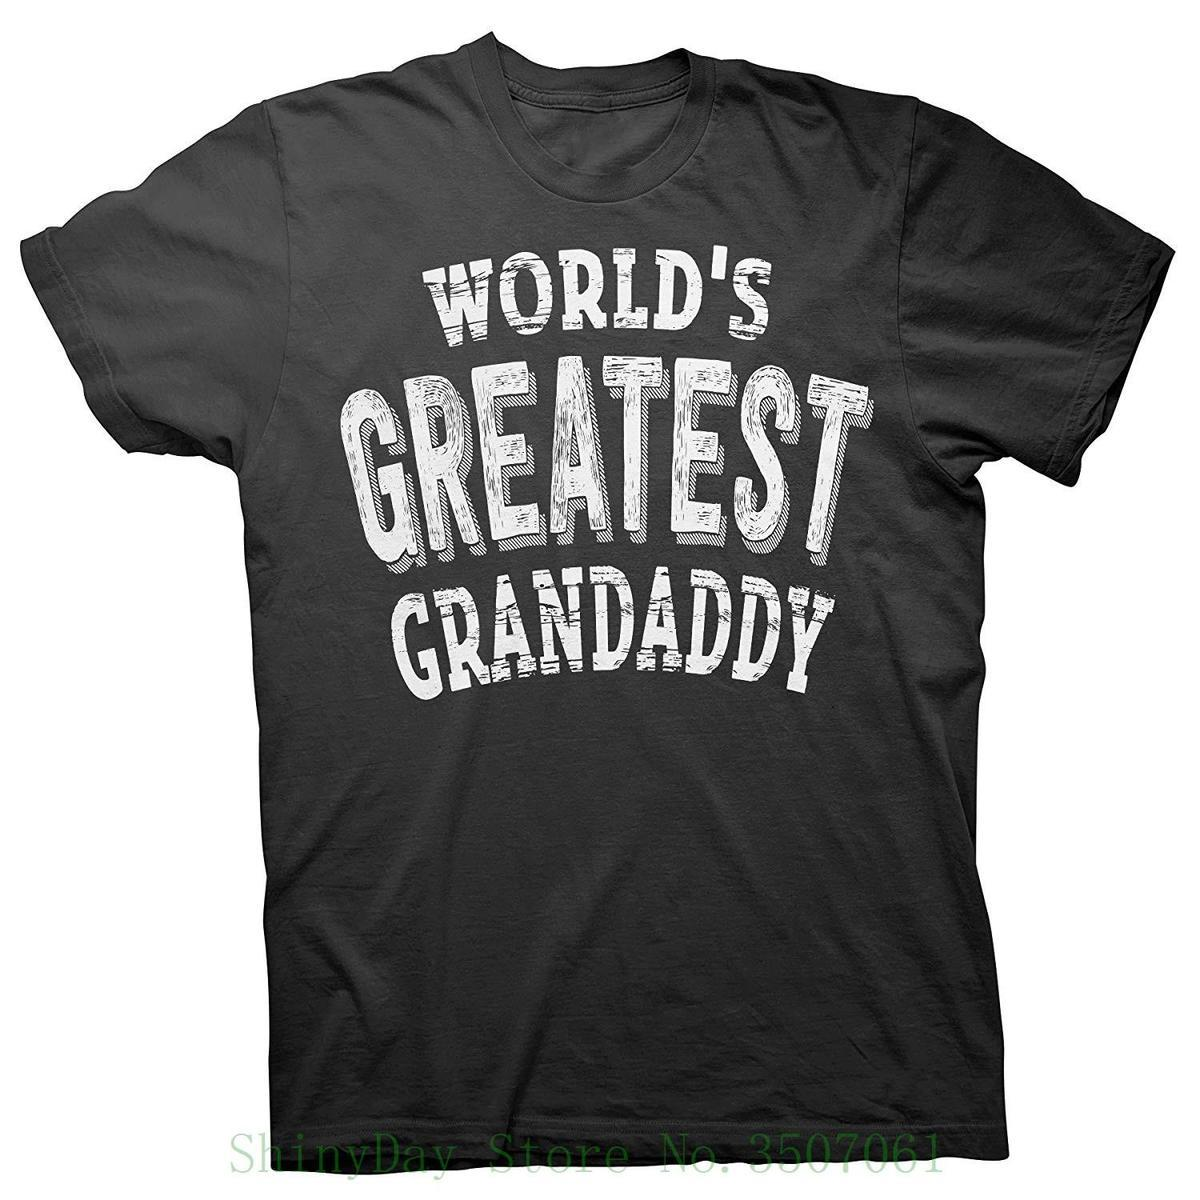 Father's Day Grandpa Gift - World's Greatest Grandaddy - T-shirt Tshirt Tops Summer Cool Funny T-shirt